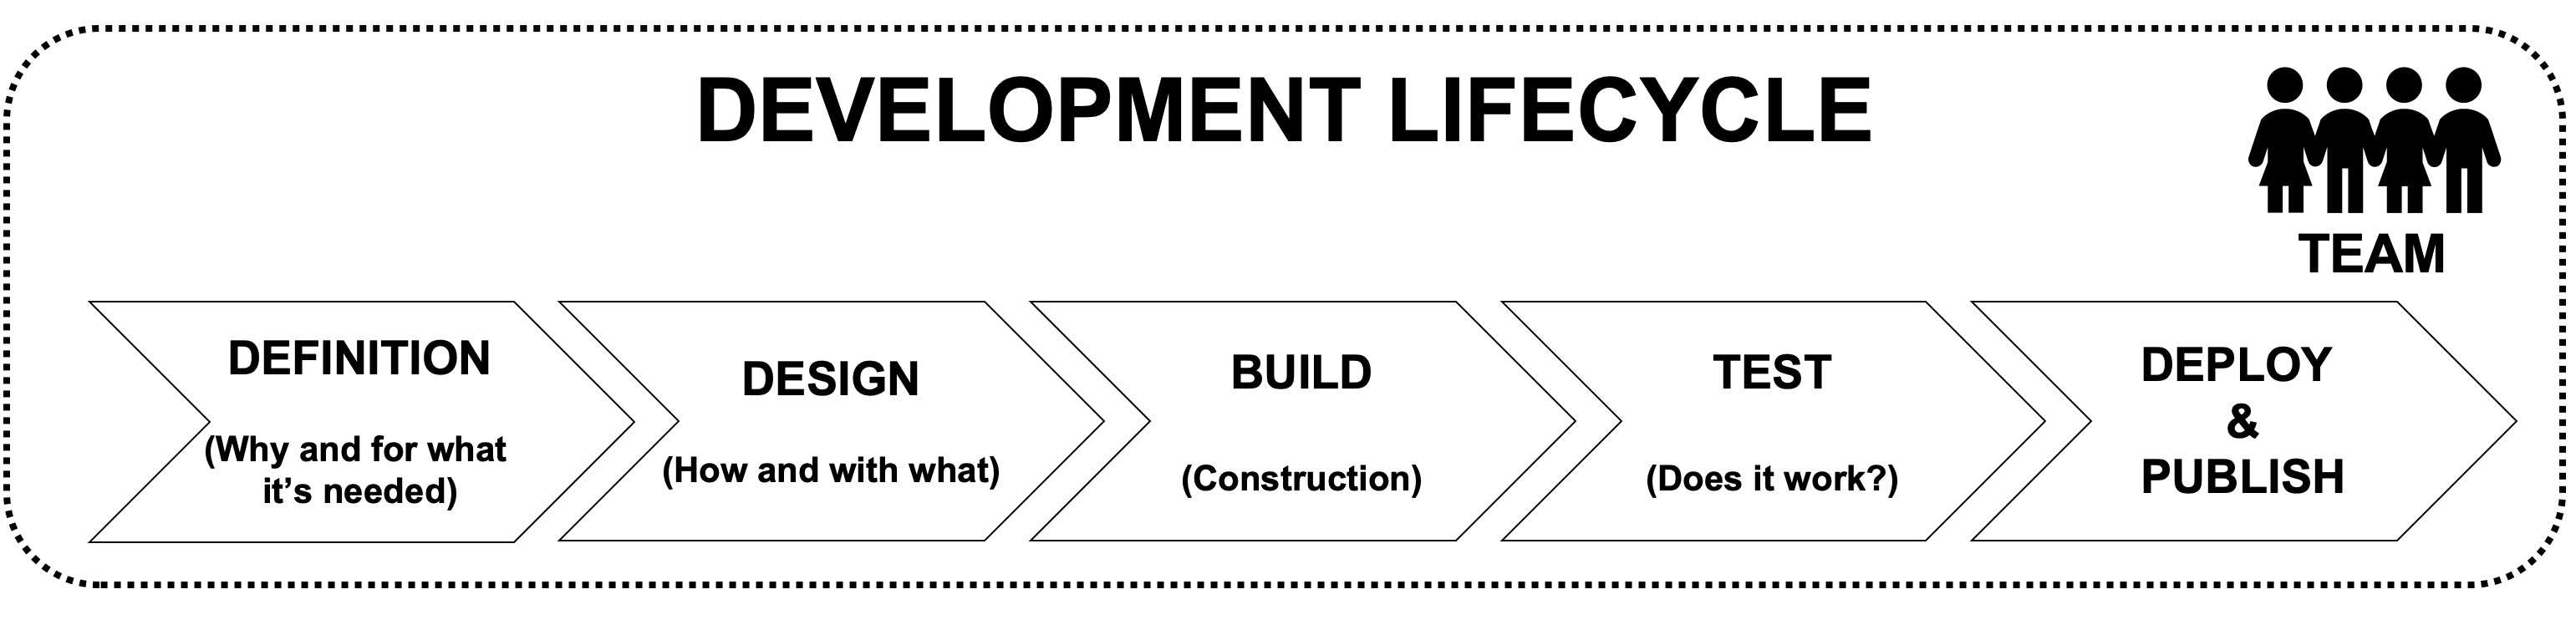 Dev Lifecycle